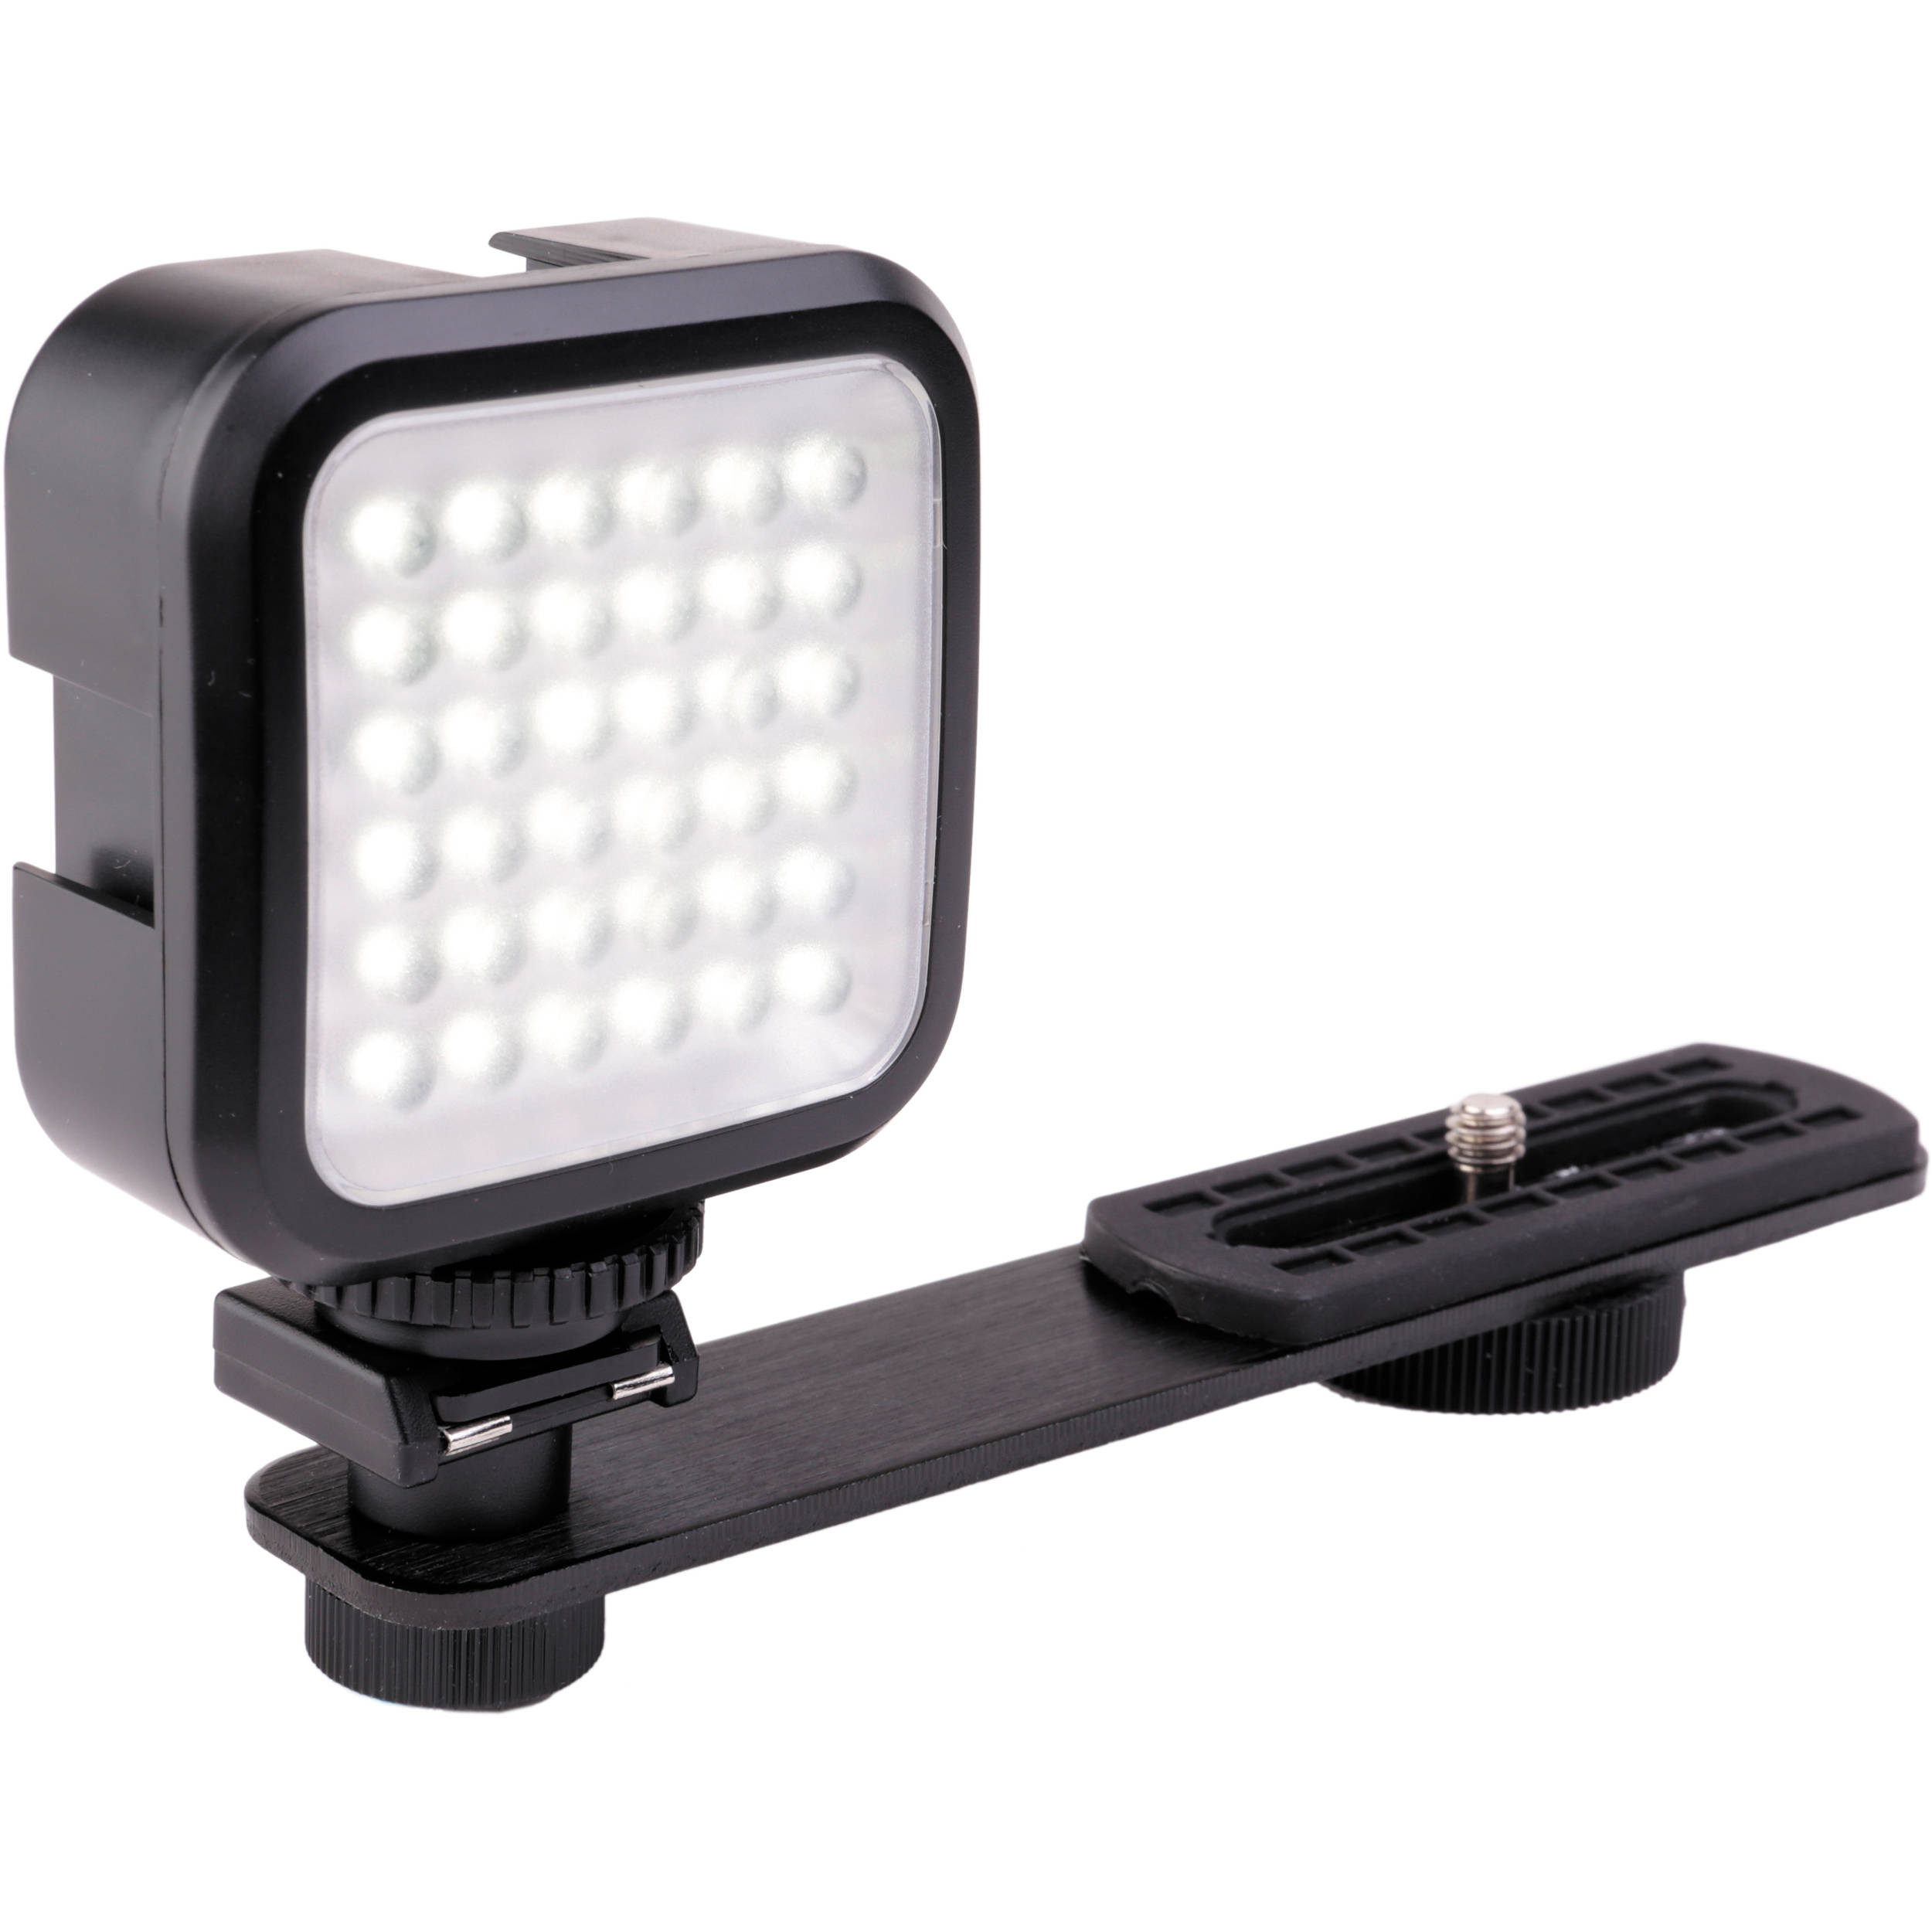 474b43bd0b594 Genaray LED-2100 36 LED Compact On-Camera Light